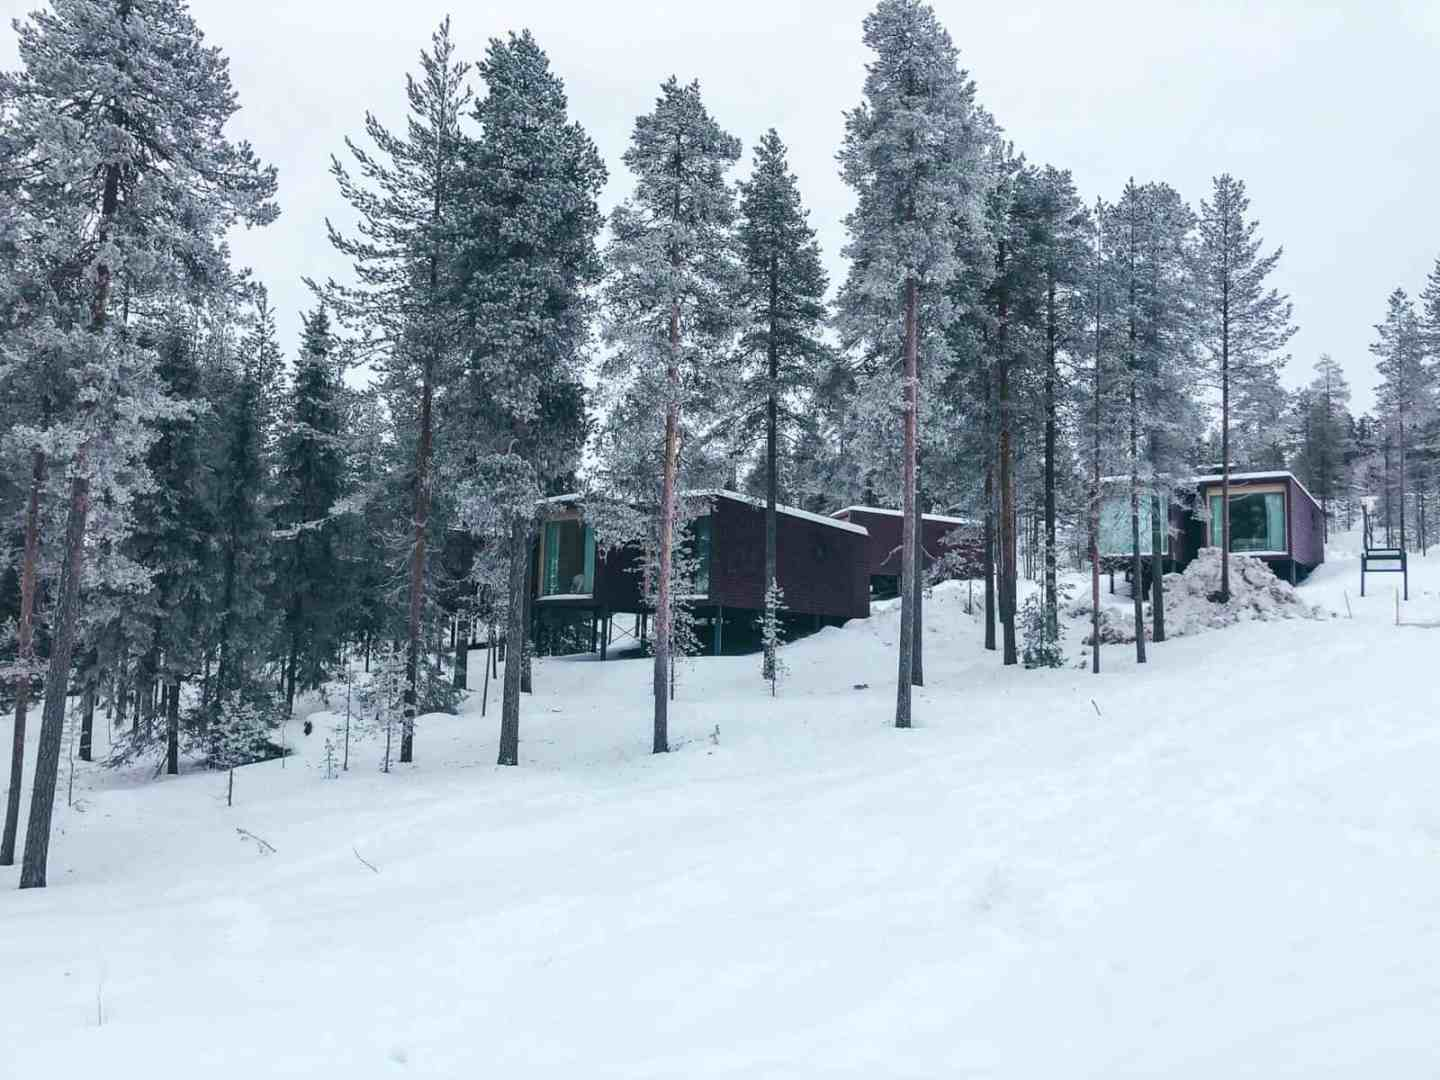 Rectangle rooms in the snow surrounded by trees